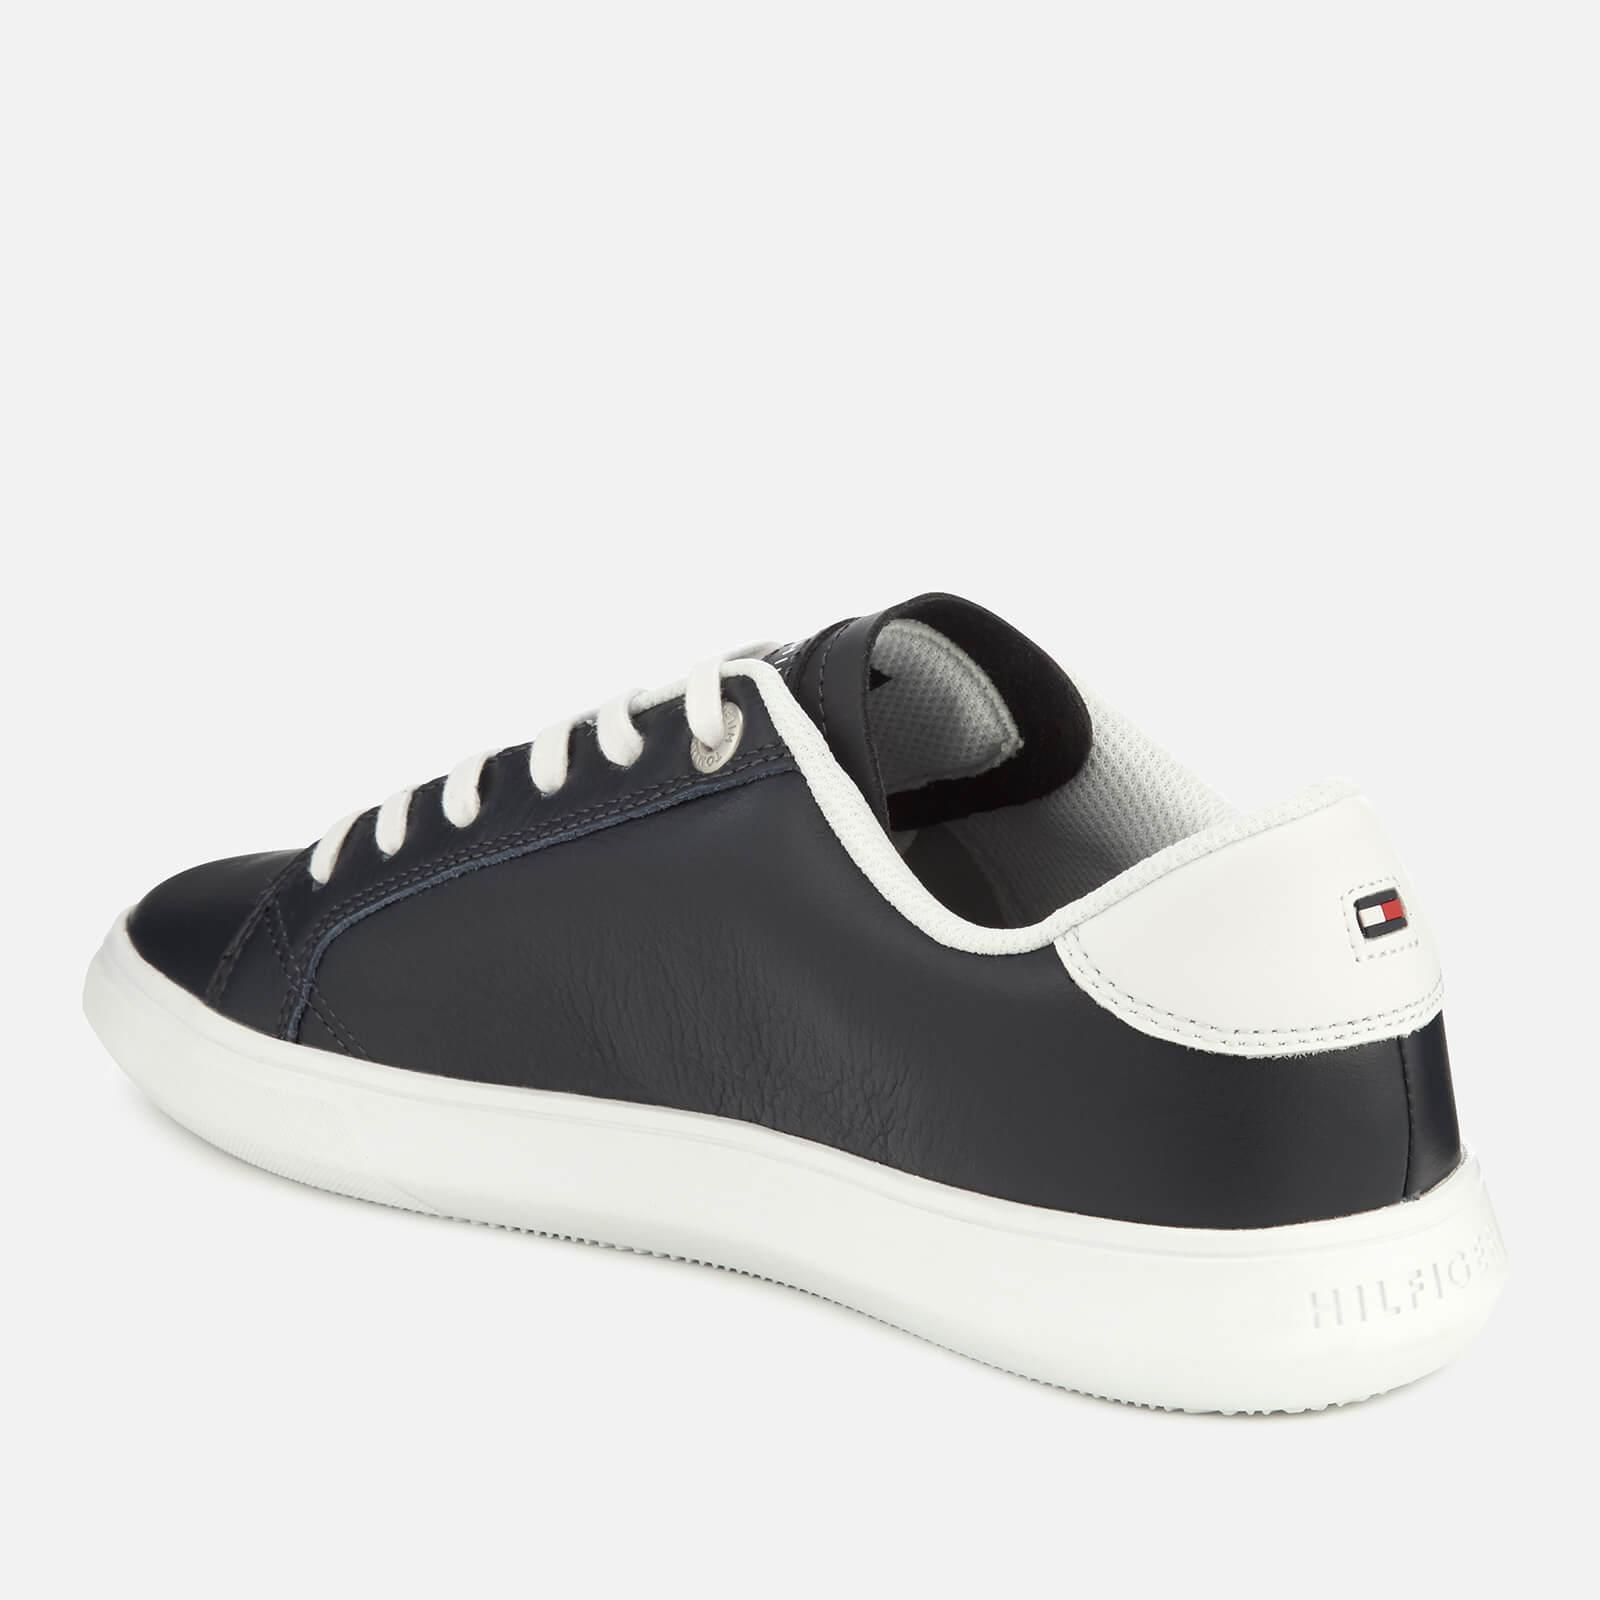 4e0c0b1f9264 Tommy Hilfiger Essential Leather Cupsole Trainers in Blue for Men ...